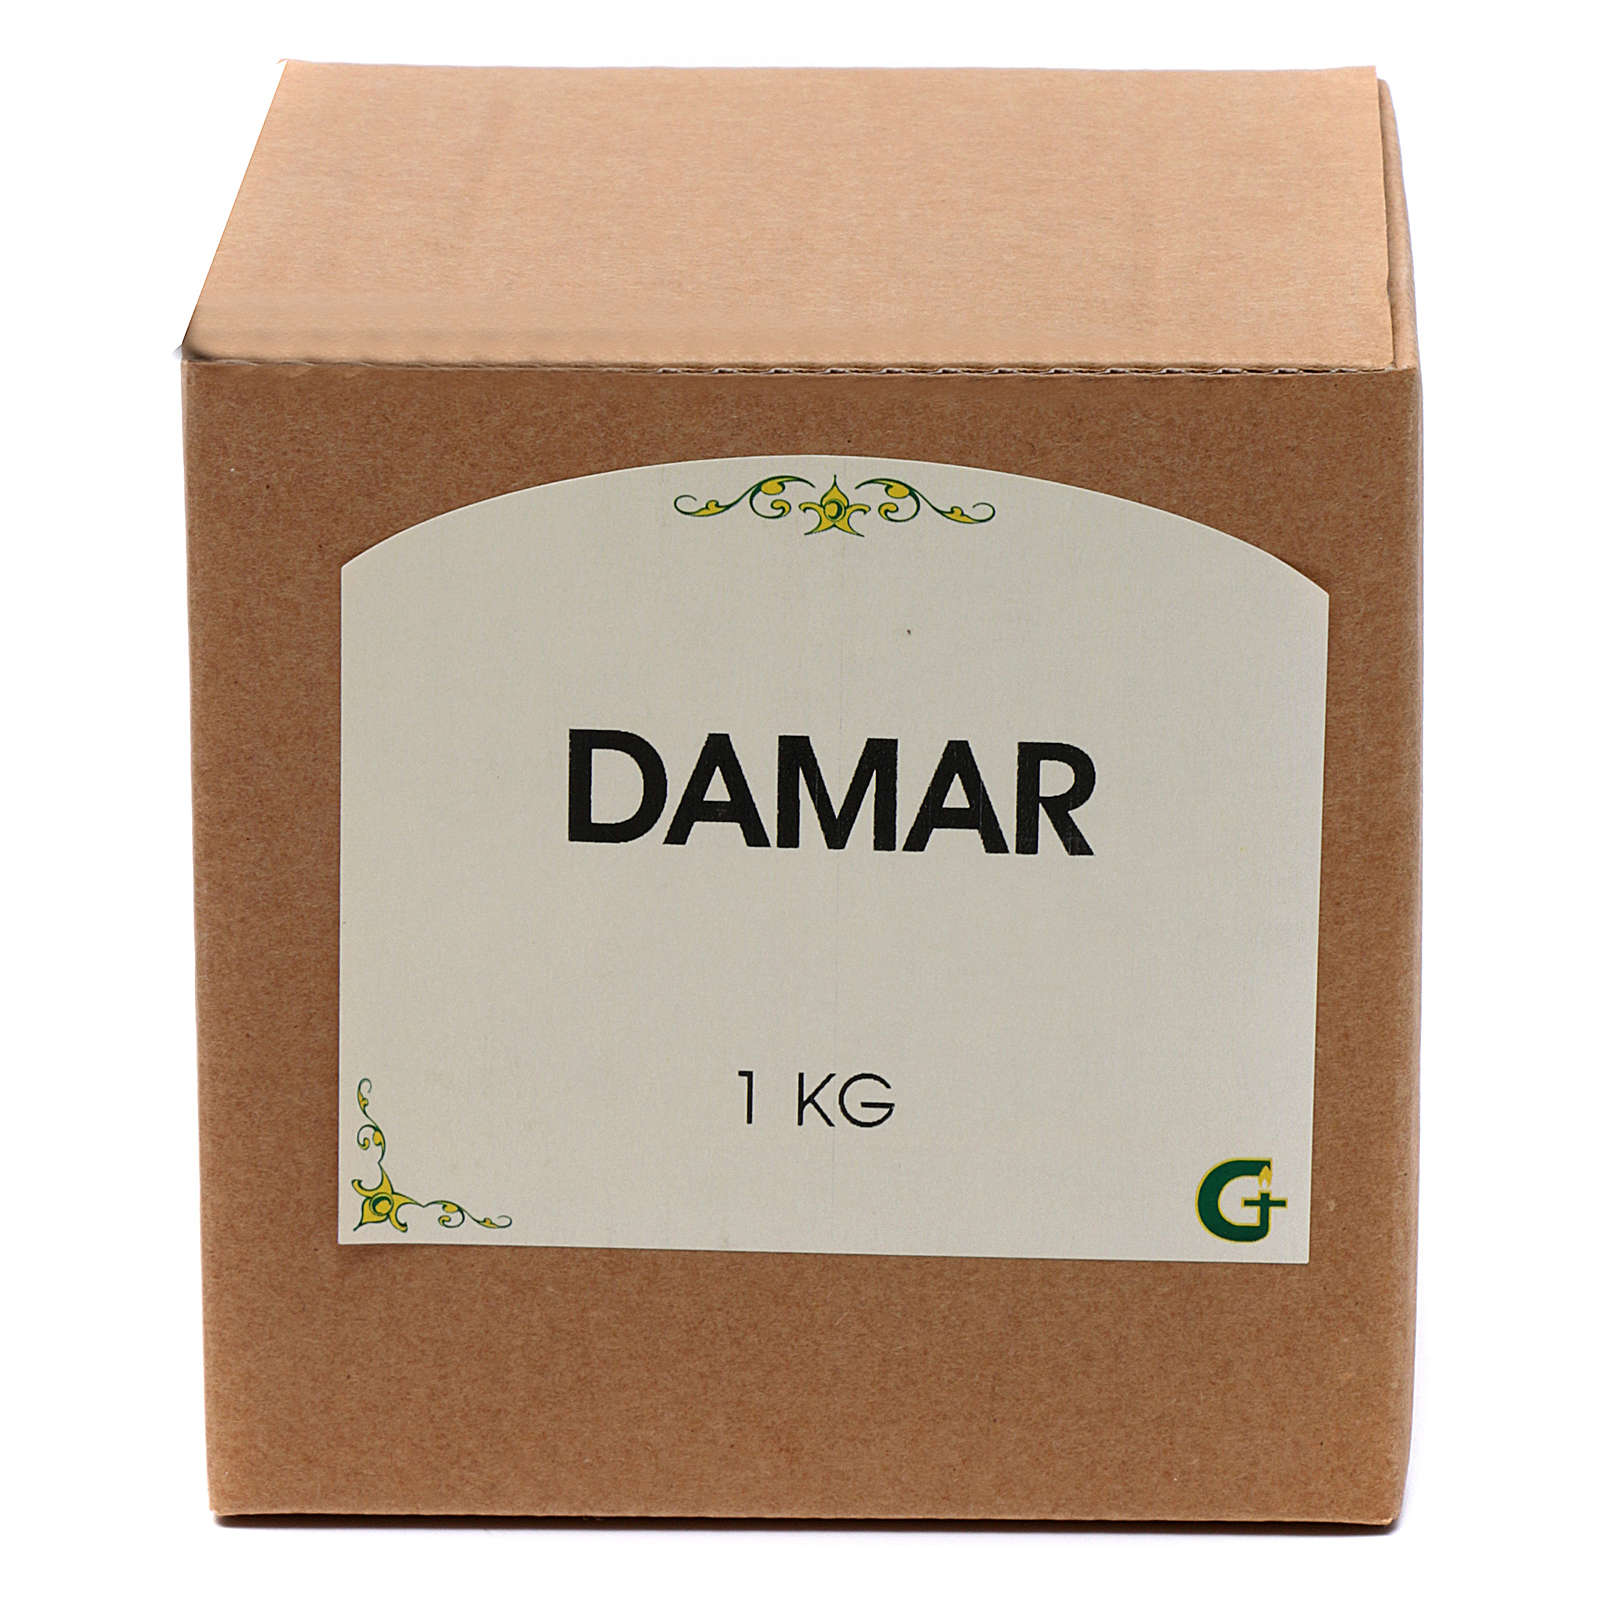 Damar Lights